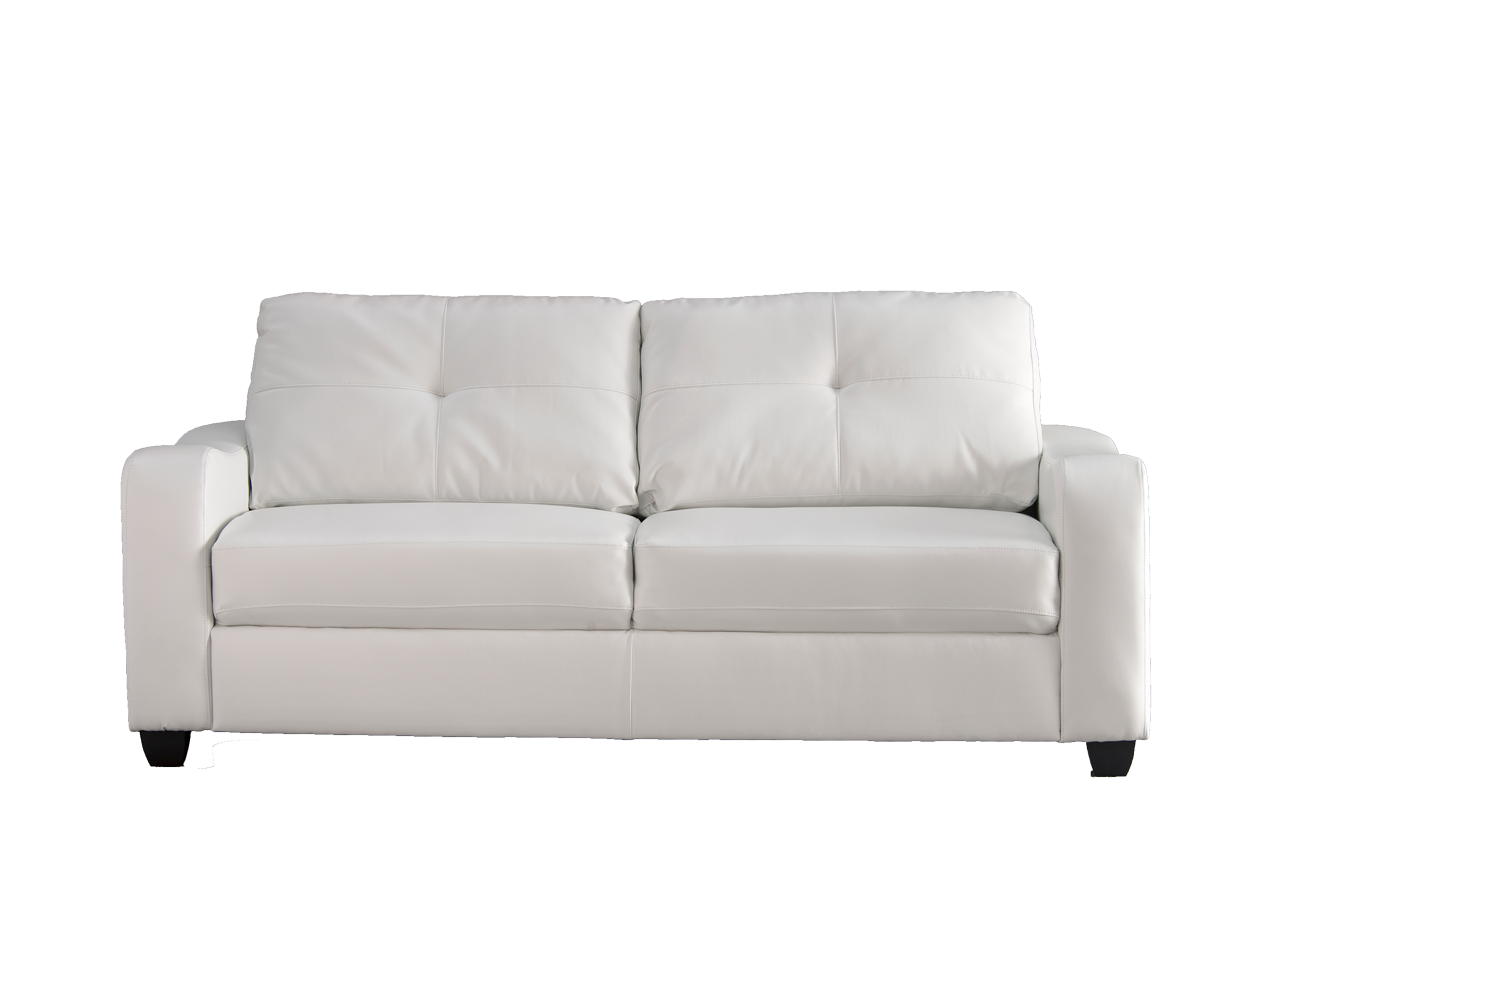 Sofa png image purepng. Couch clipart beige